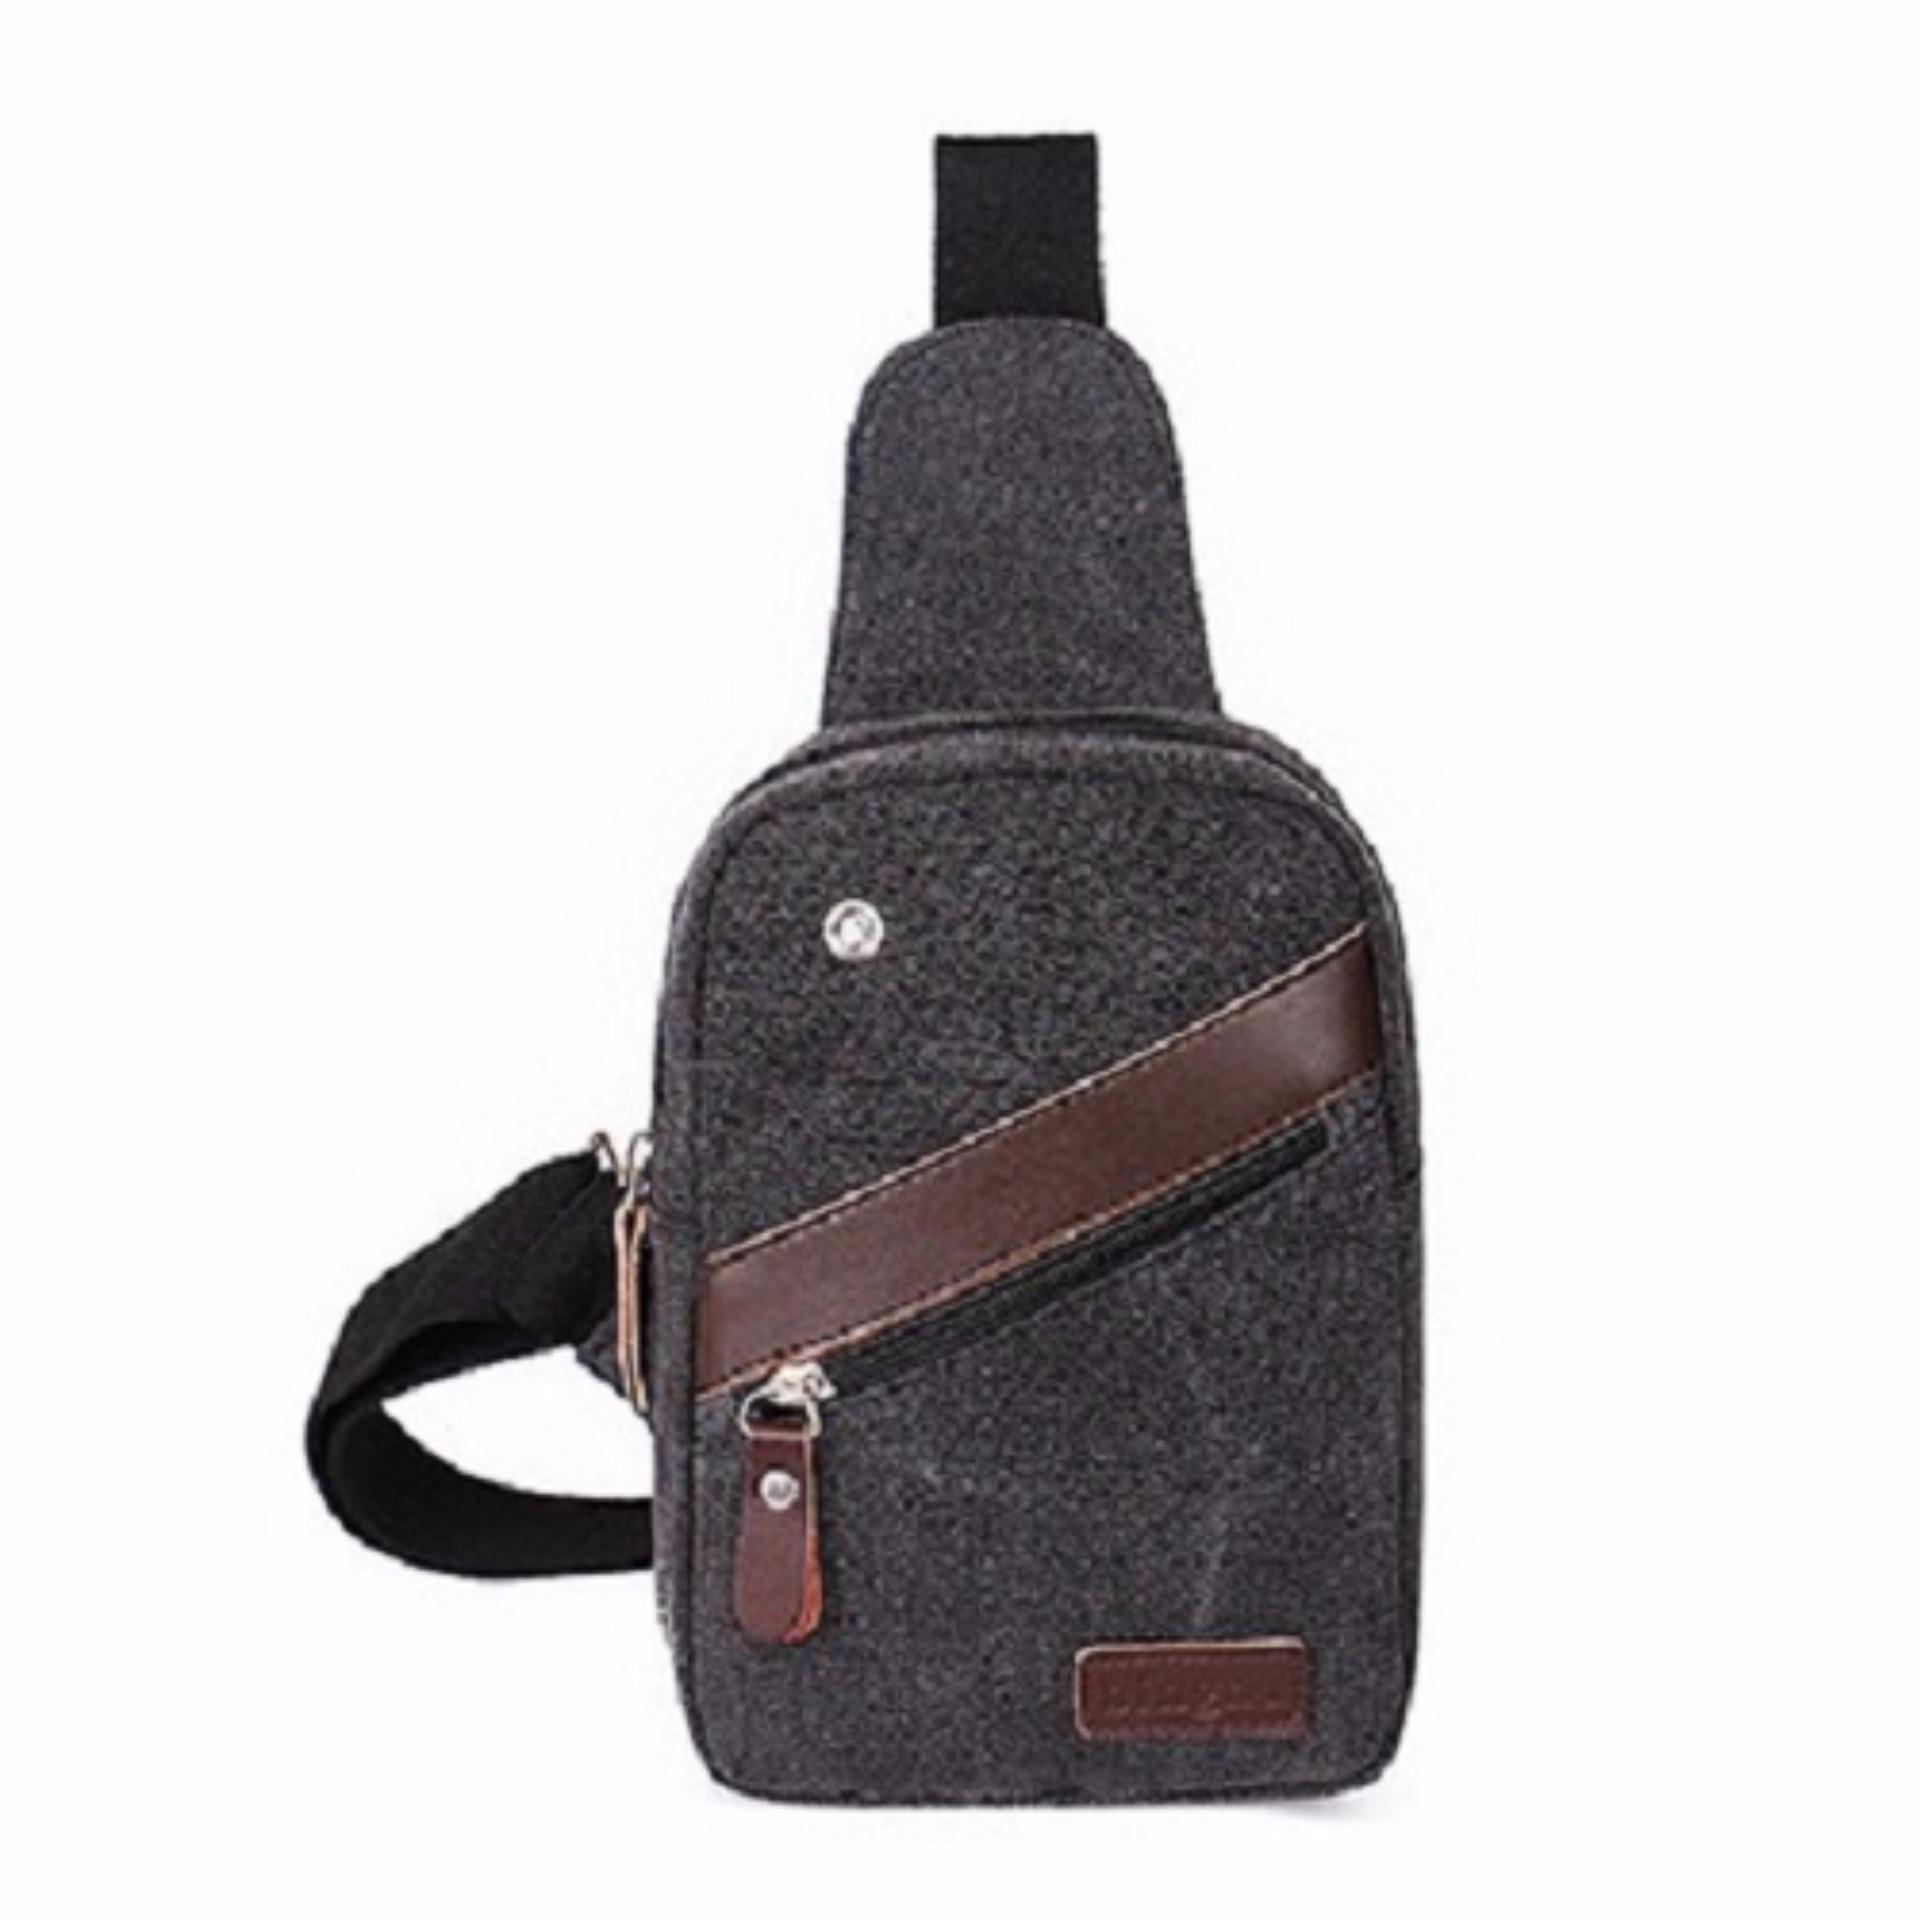 Generic Tas Selempang Messenger Canvas Import Mini Sling Bag Untuk Tablet Android / Ipad Mini SB-BH